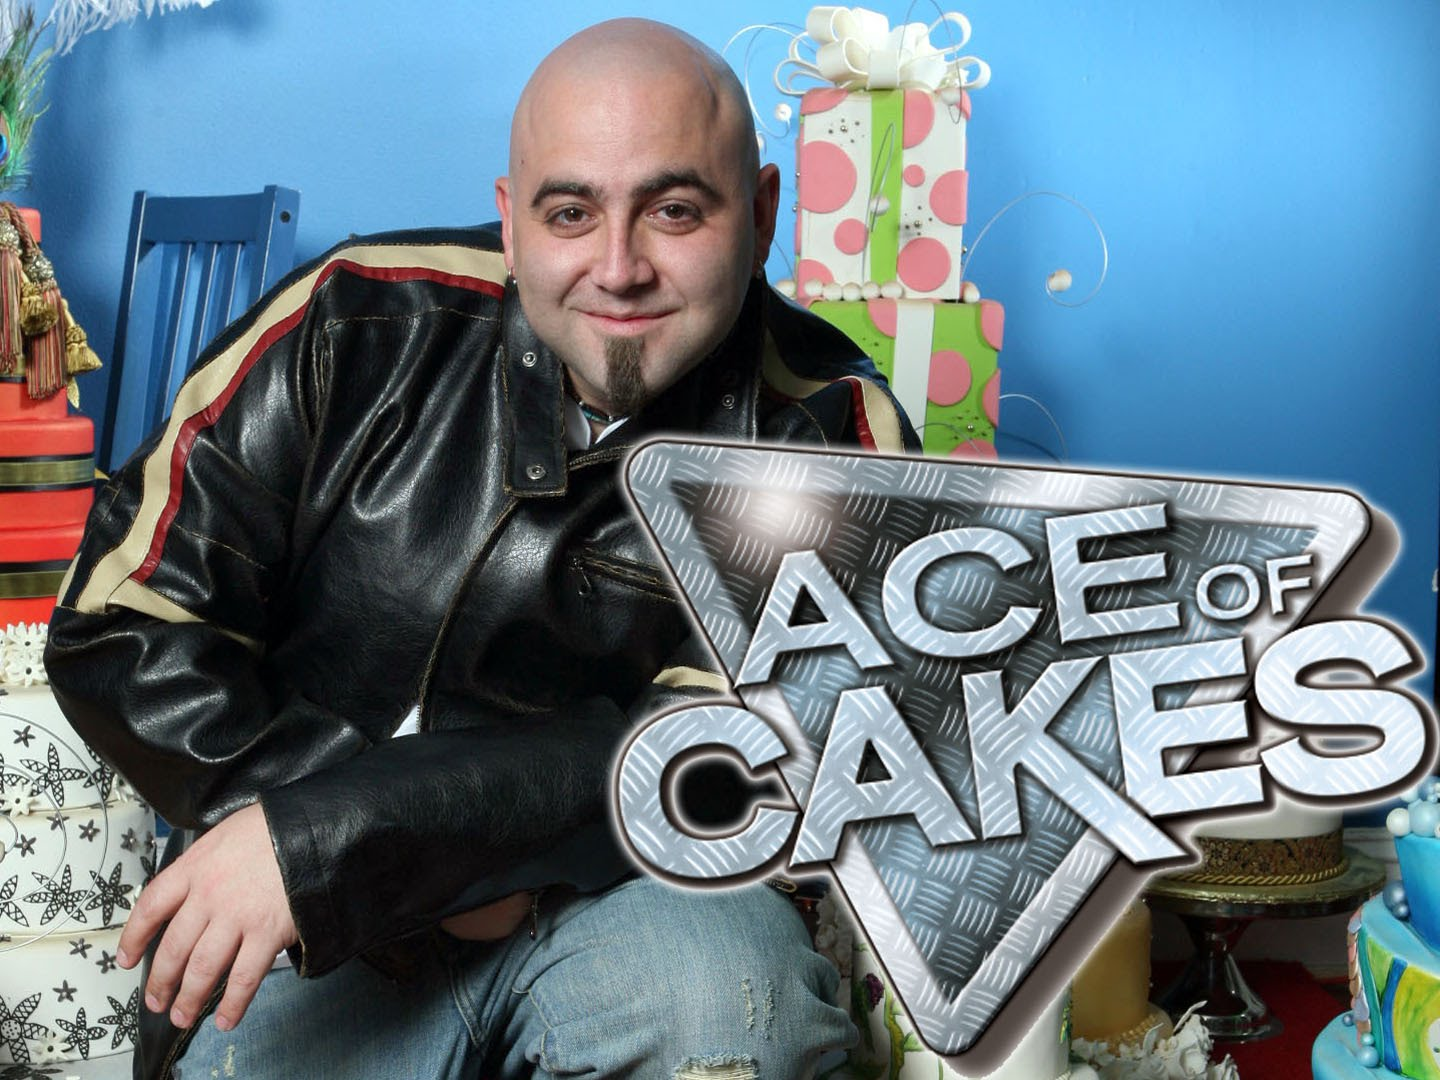 Ace Of Cakes: Season 3